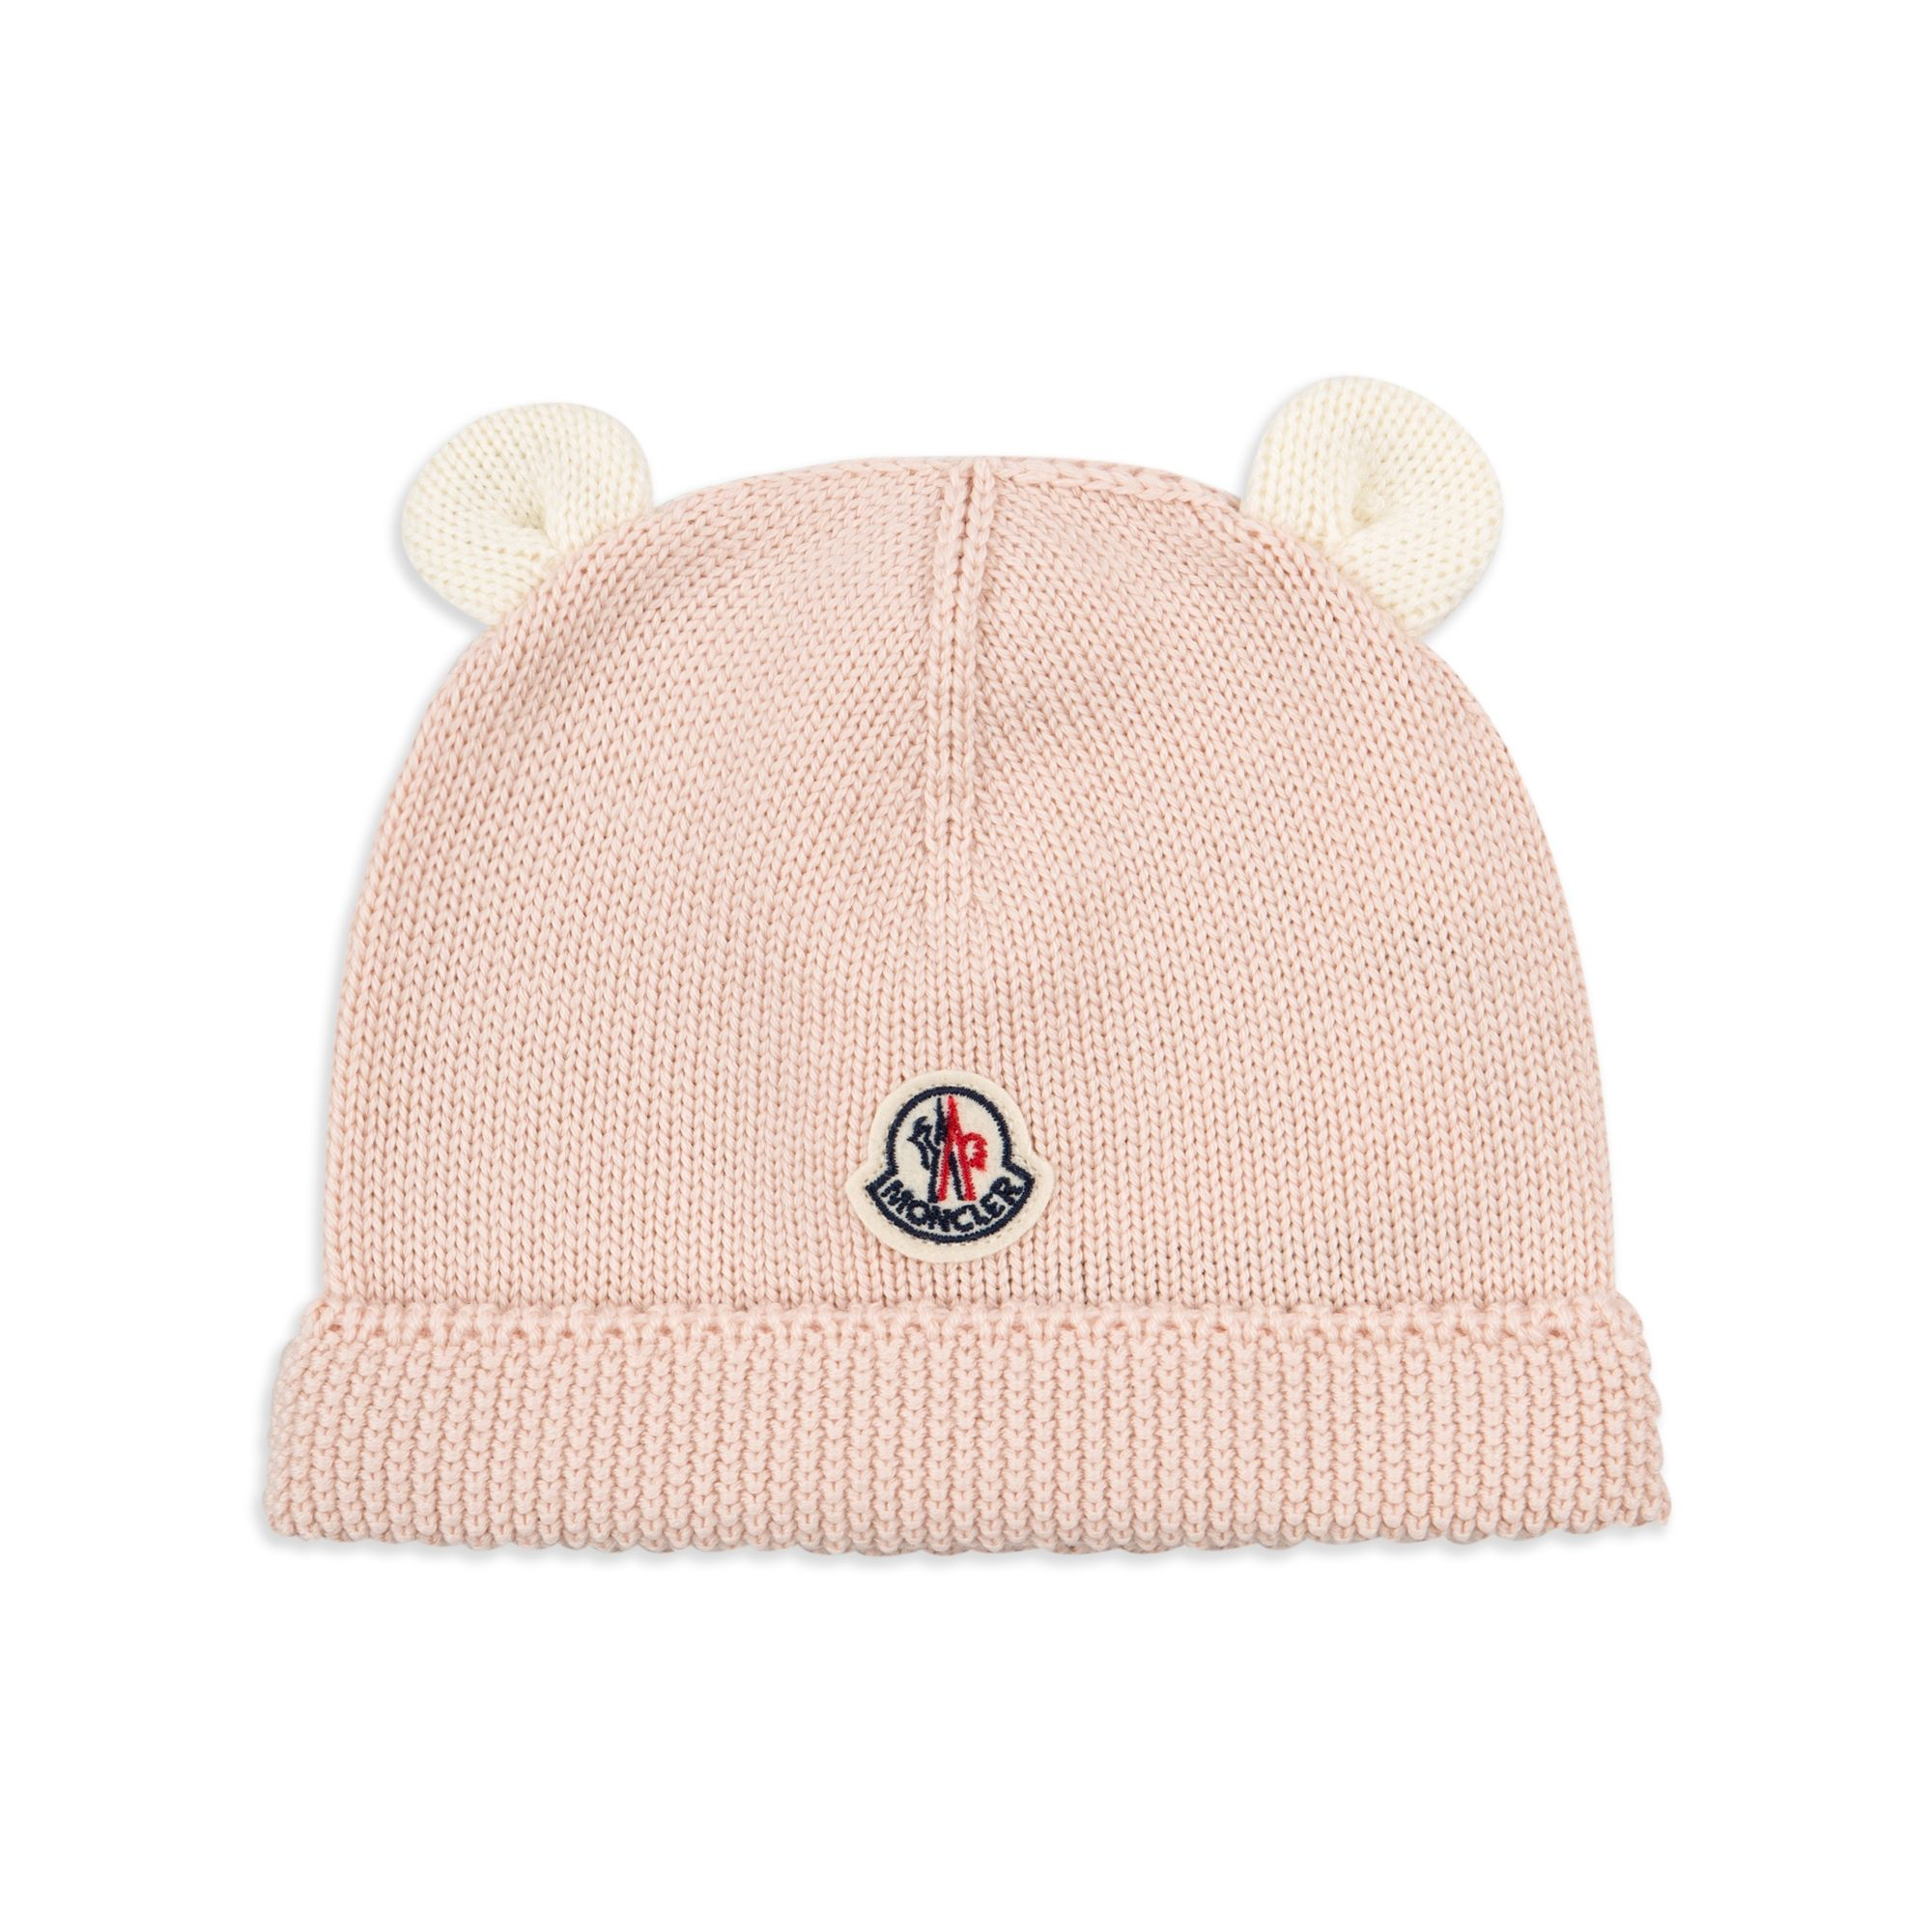 ac4ef3ad5 Baby Girls Ear Beanie Hat - Pink | base Christmas Stocking Fillers ...